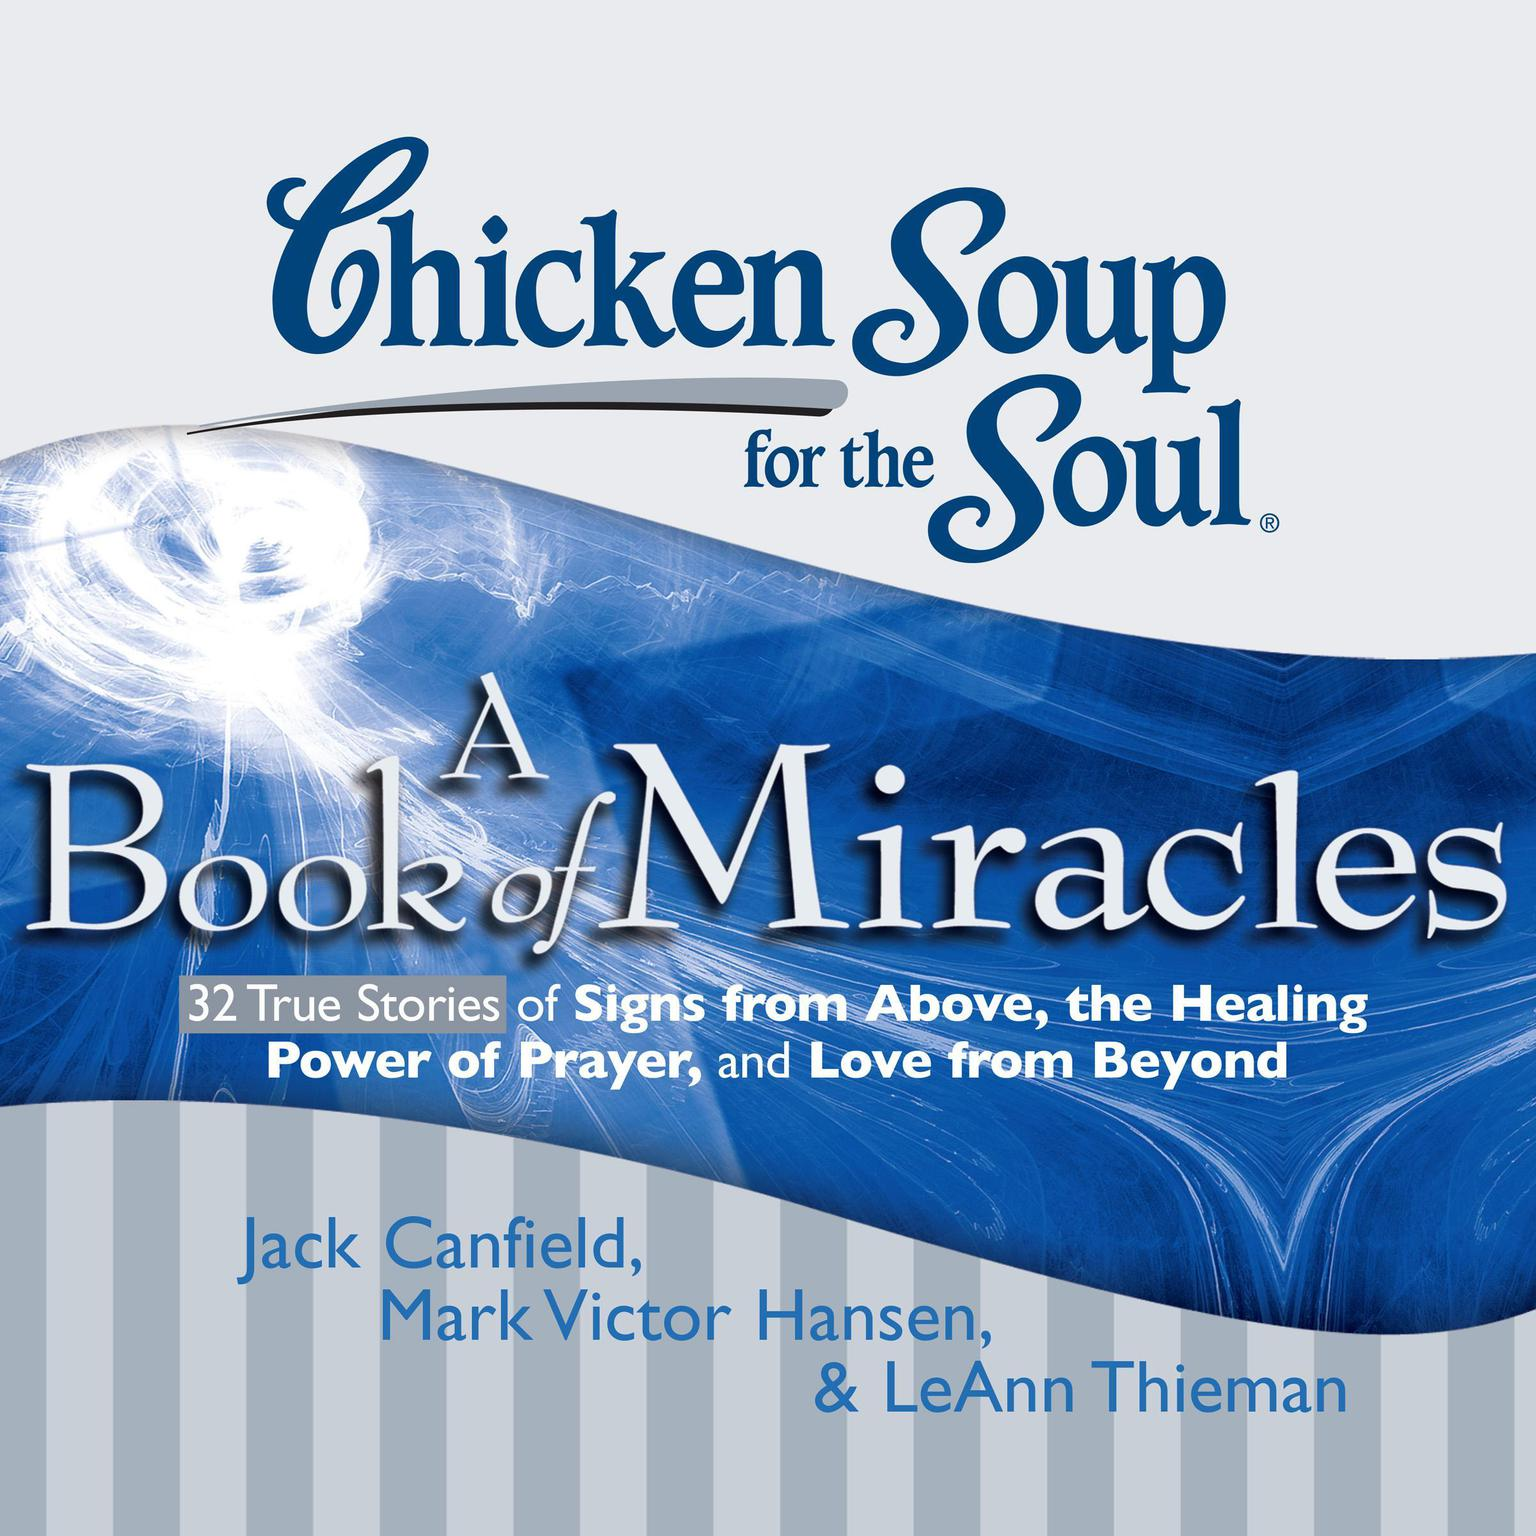 Printable Chicken Soup for the Soul: A Book of Miracles - 32 True Stories of Signs from Above, the Healing Power of Prayer, and Love from Beyond Audiobook Cover Art